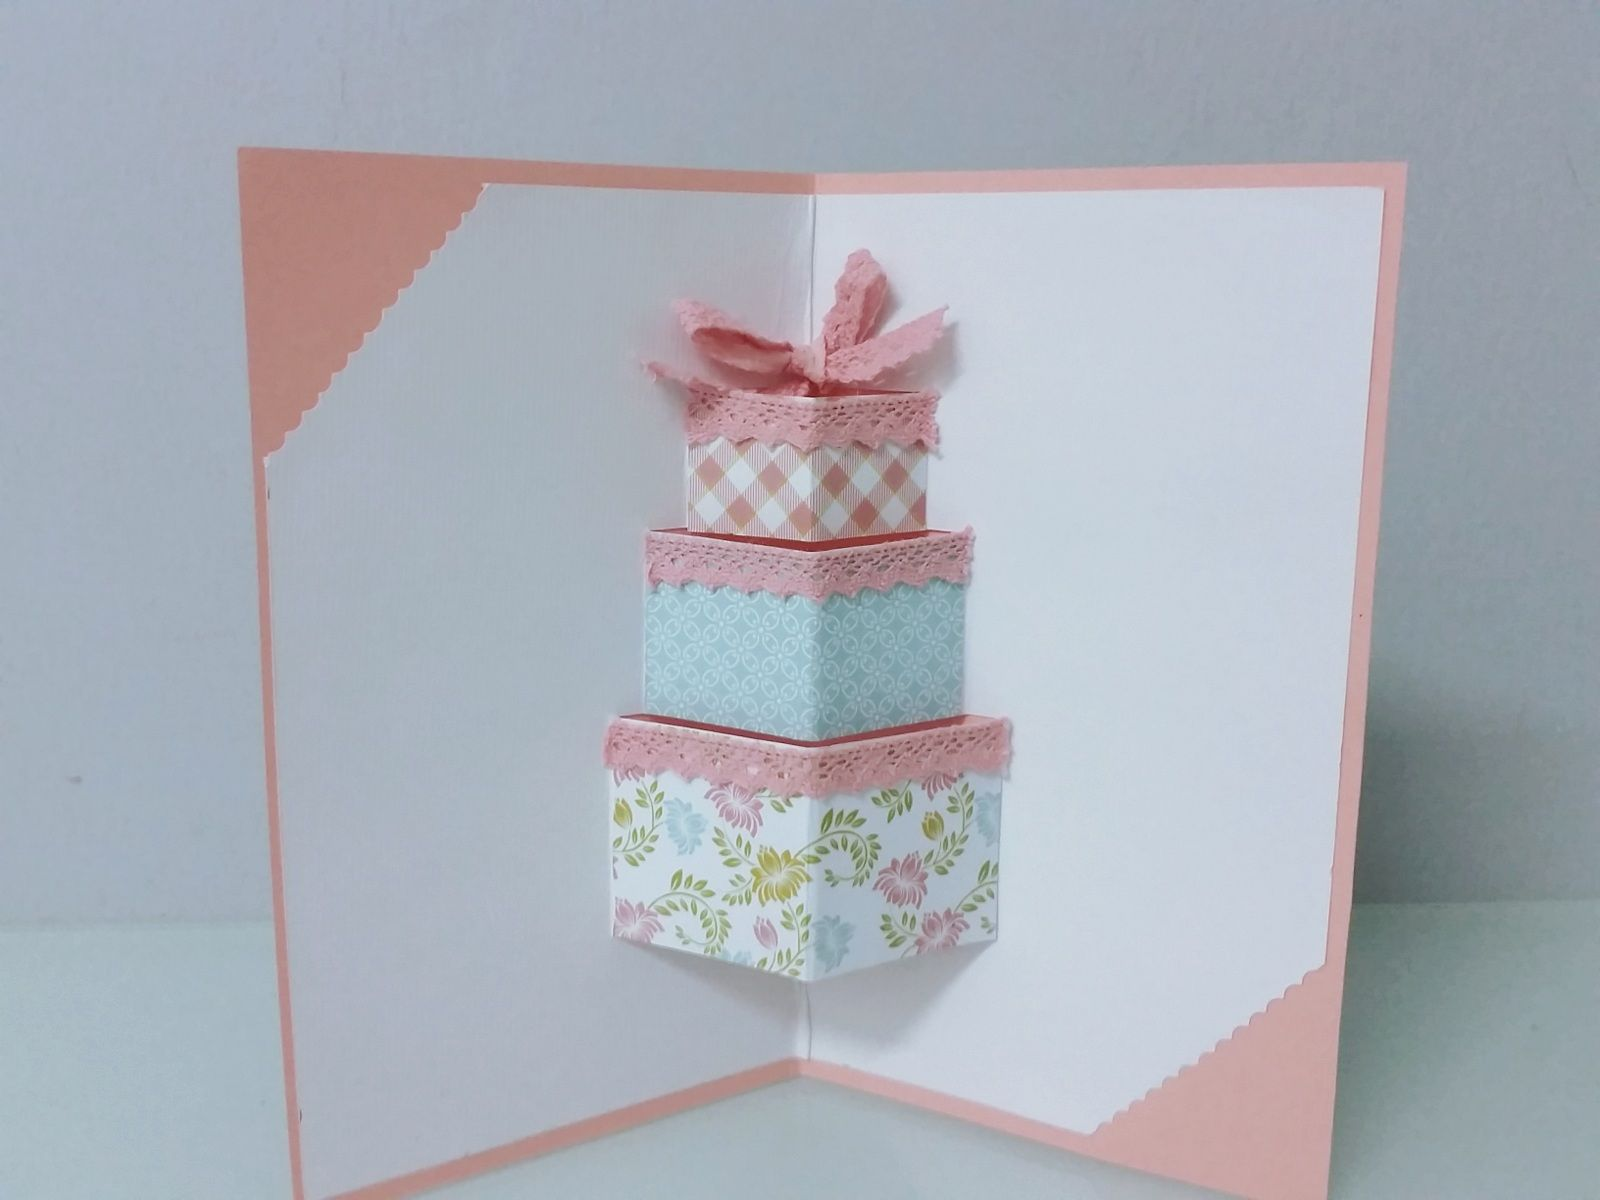 3d Gift Box Pop Up Card In Lace And Pastel Colours Girls Are Gonna Love This Boxed Birthday Cards Girl Birthday Cards Gift Box Birthday